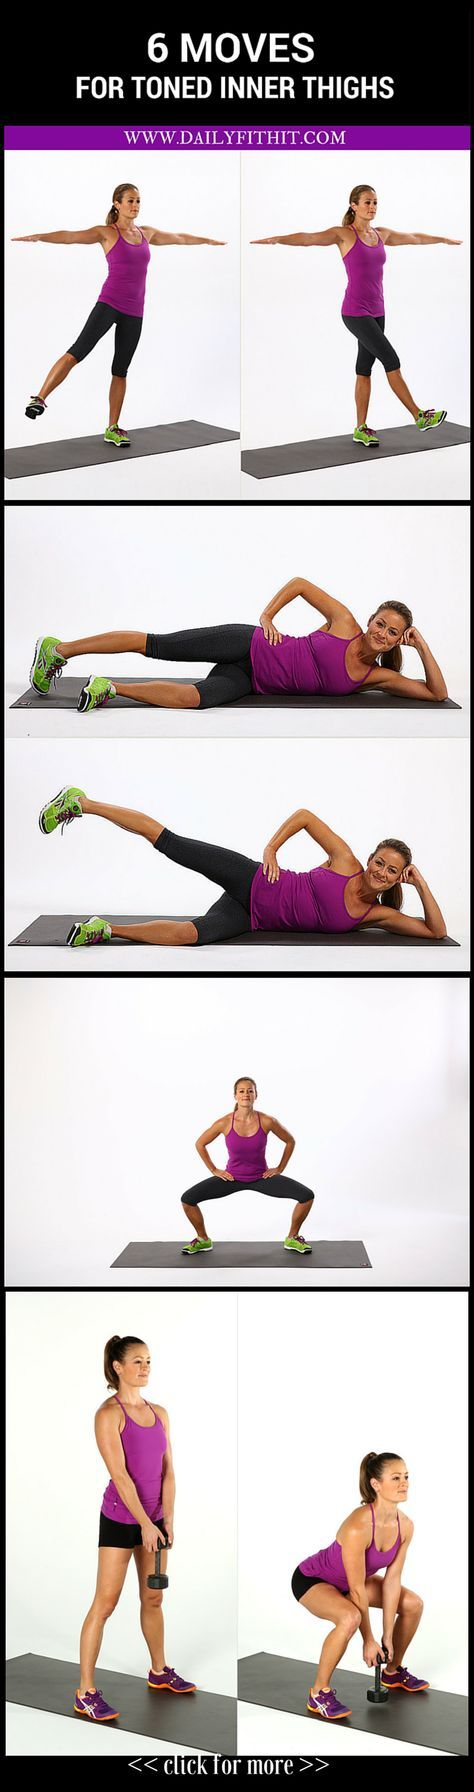 6 Moves for Terrifically Toned Inner Thighs #Workout #Fitness #WeightLoss Image Credits: popsugarfitness